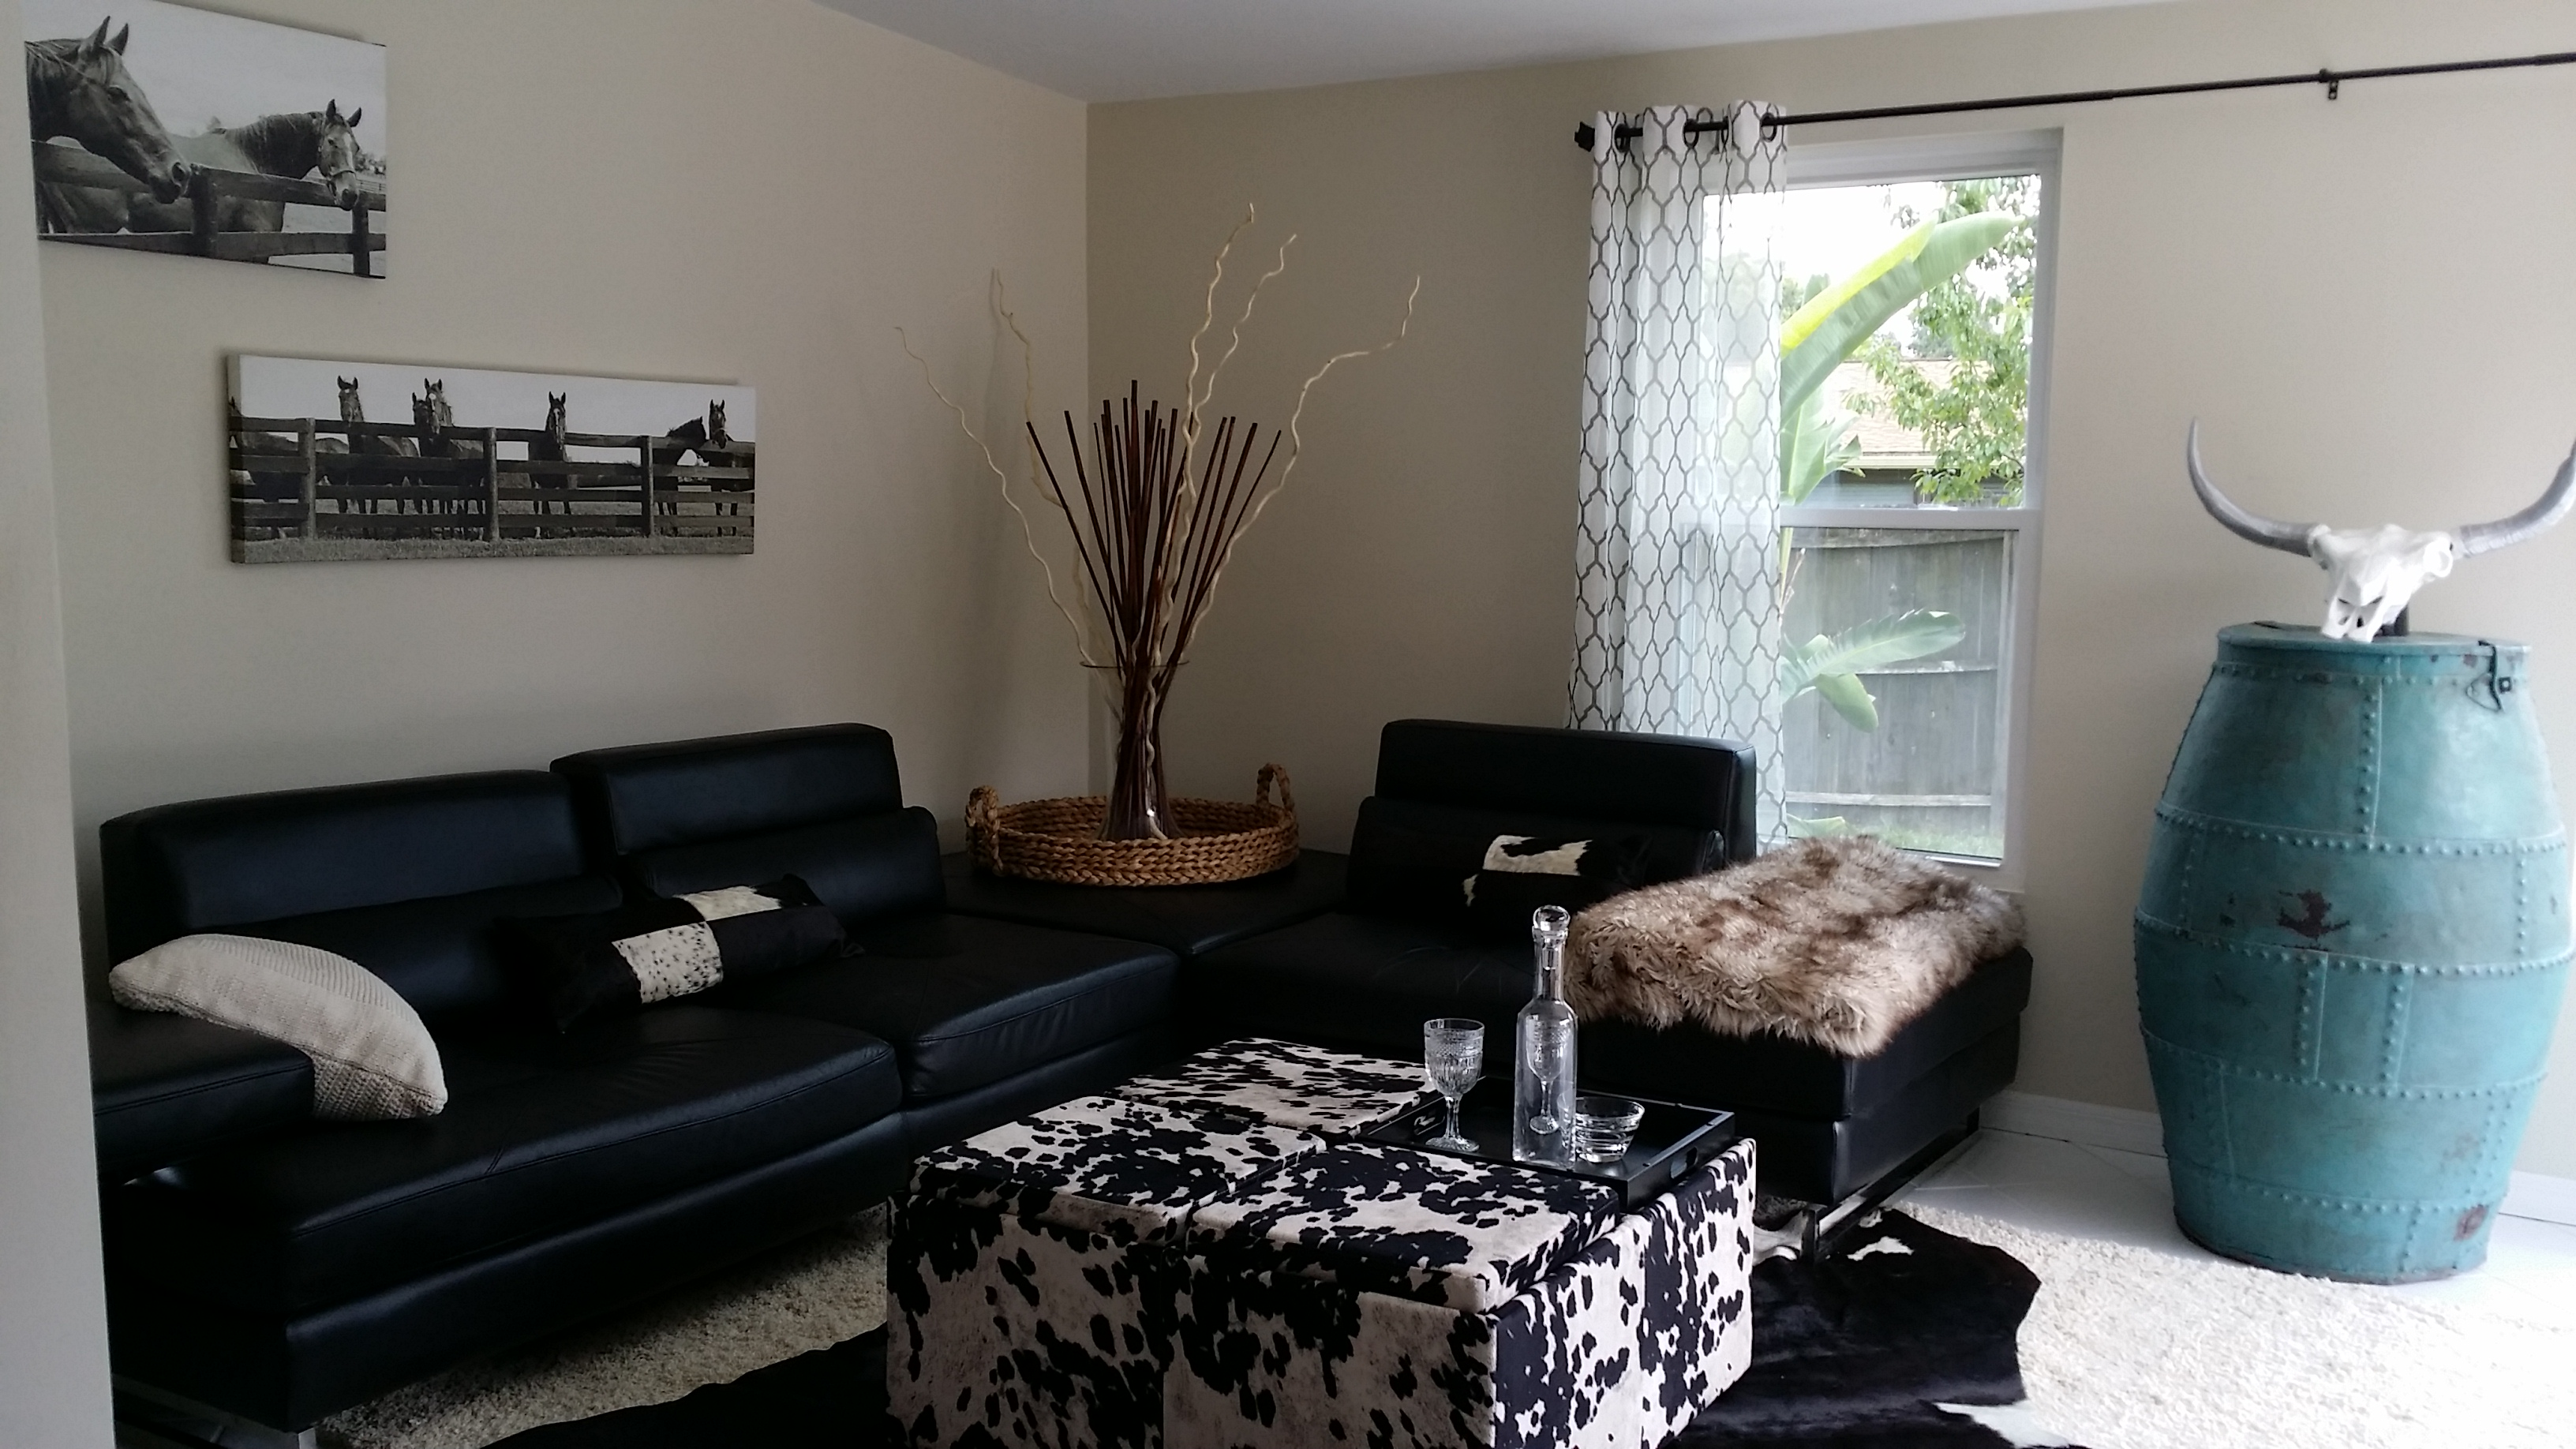 In november we added plantation shutters and i furnished with a sofa - 2015 07 11 14 52 59